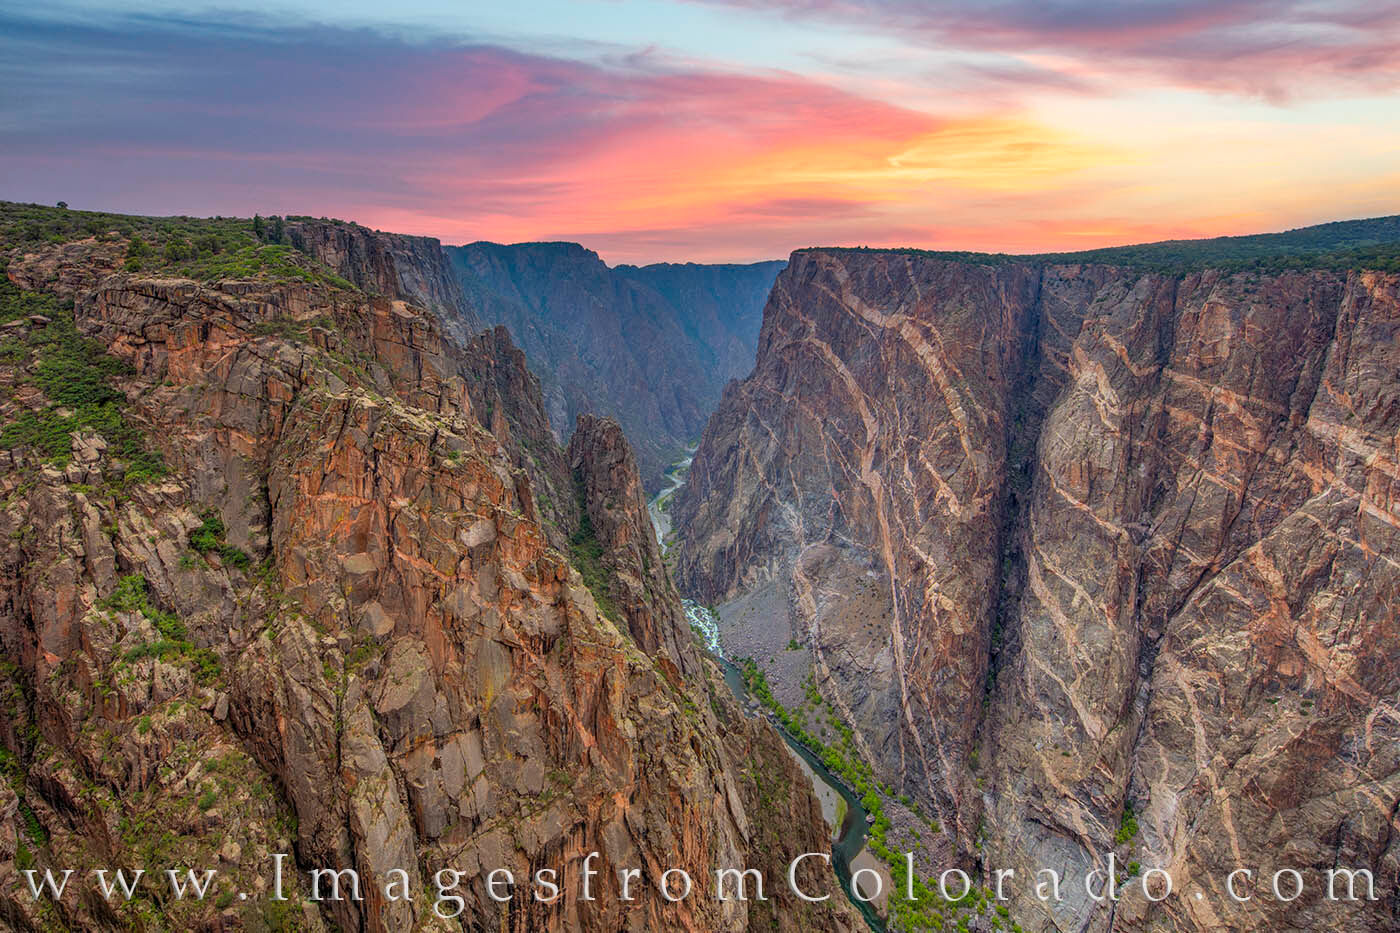 The Painted Wall in the Black Canyon of the Gunnison is one of the most beautiful areas of this national park. The cliffs are...